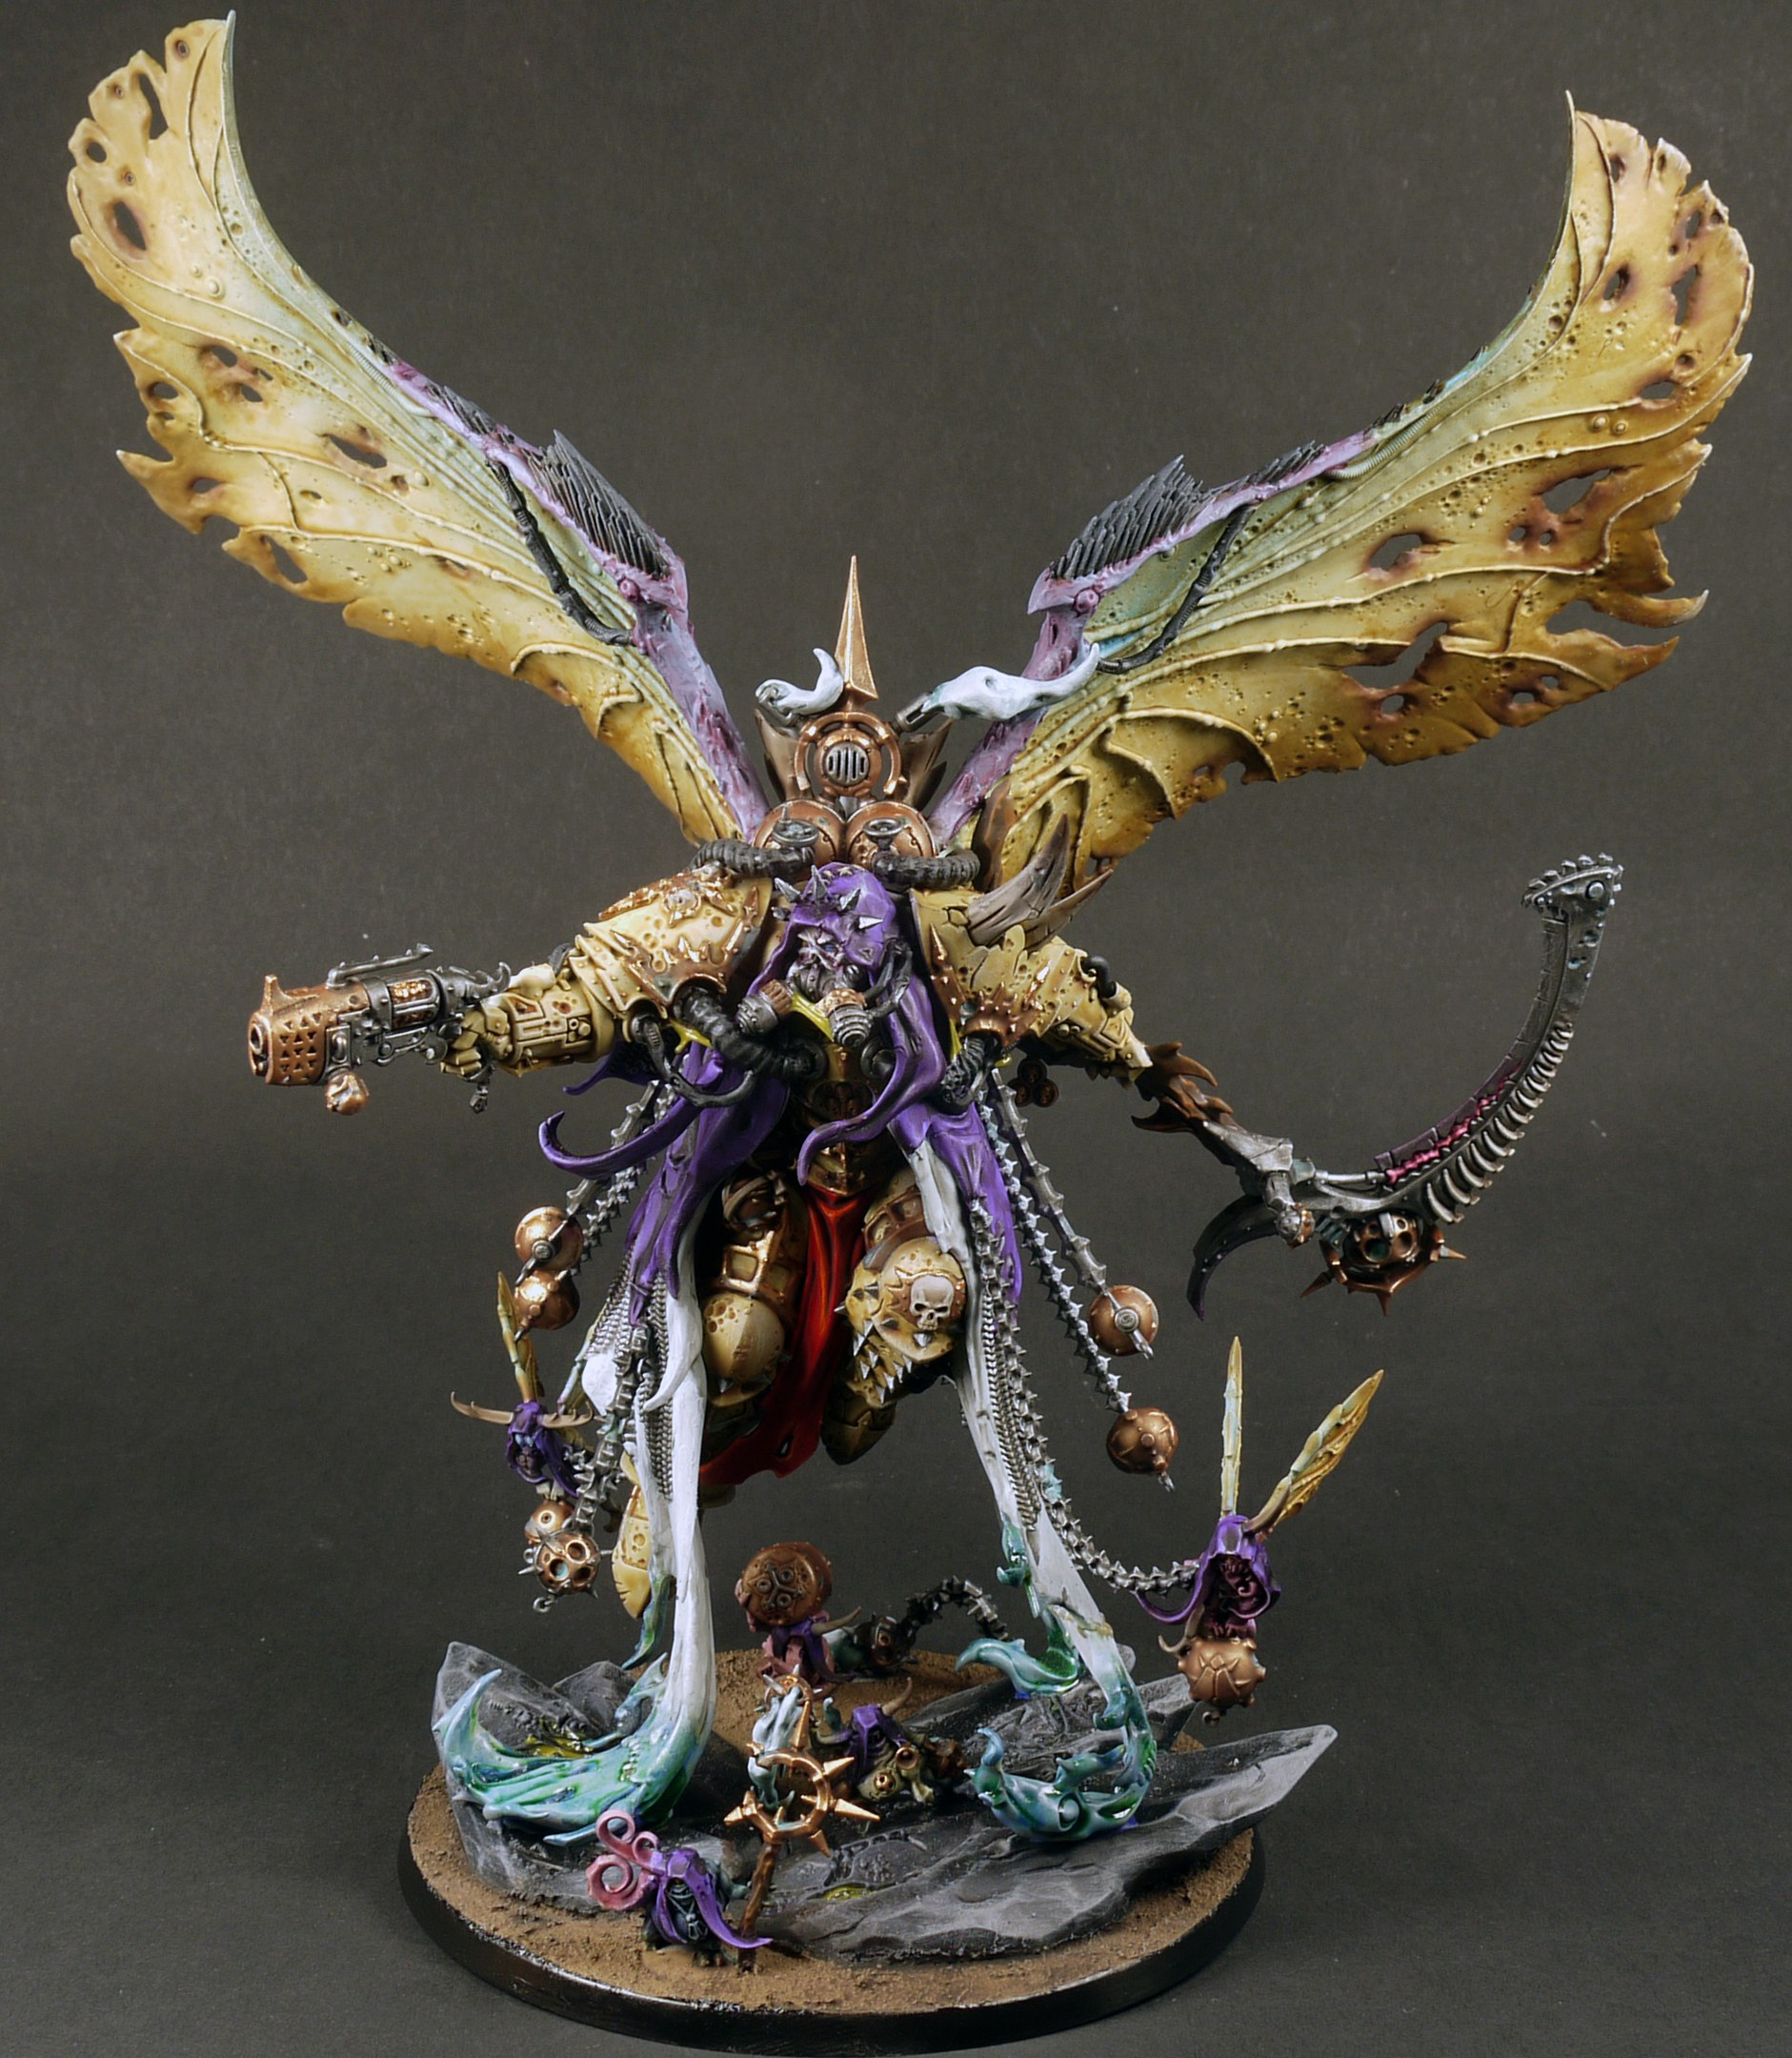 Yet another Mortarion